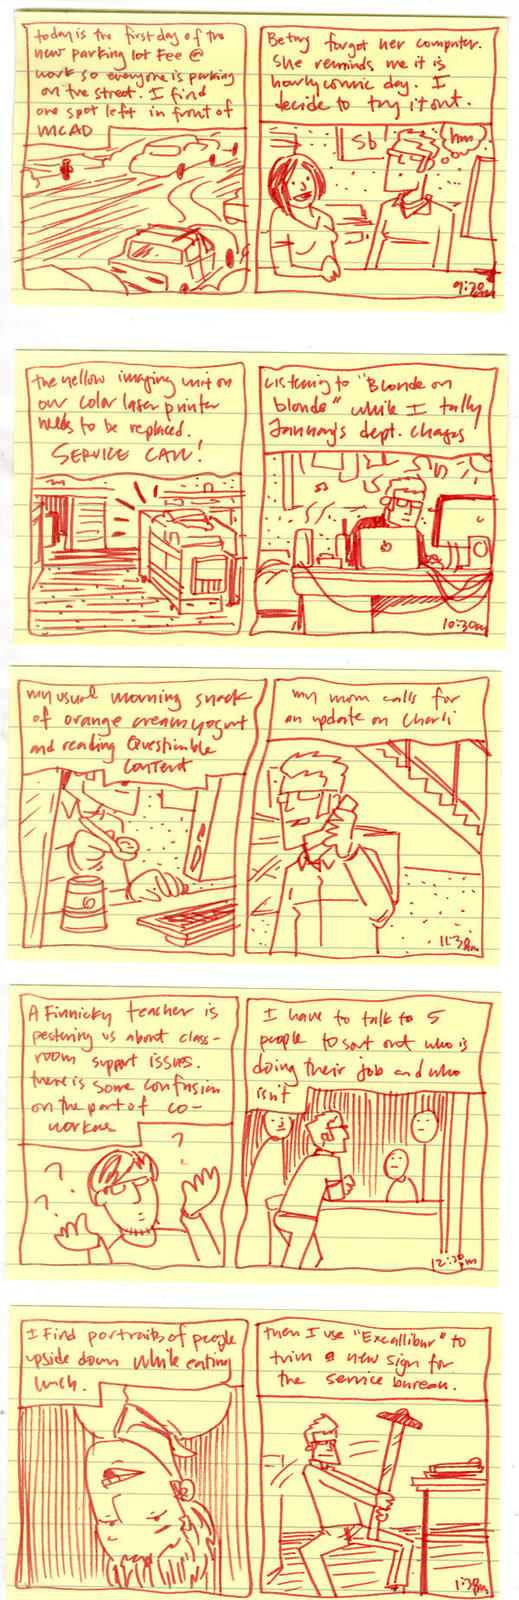 hourlies-2.jpg